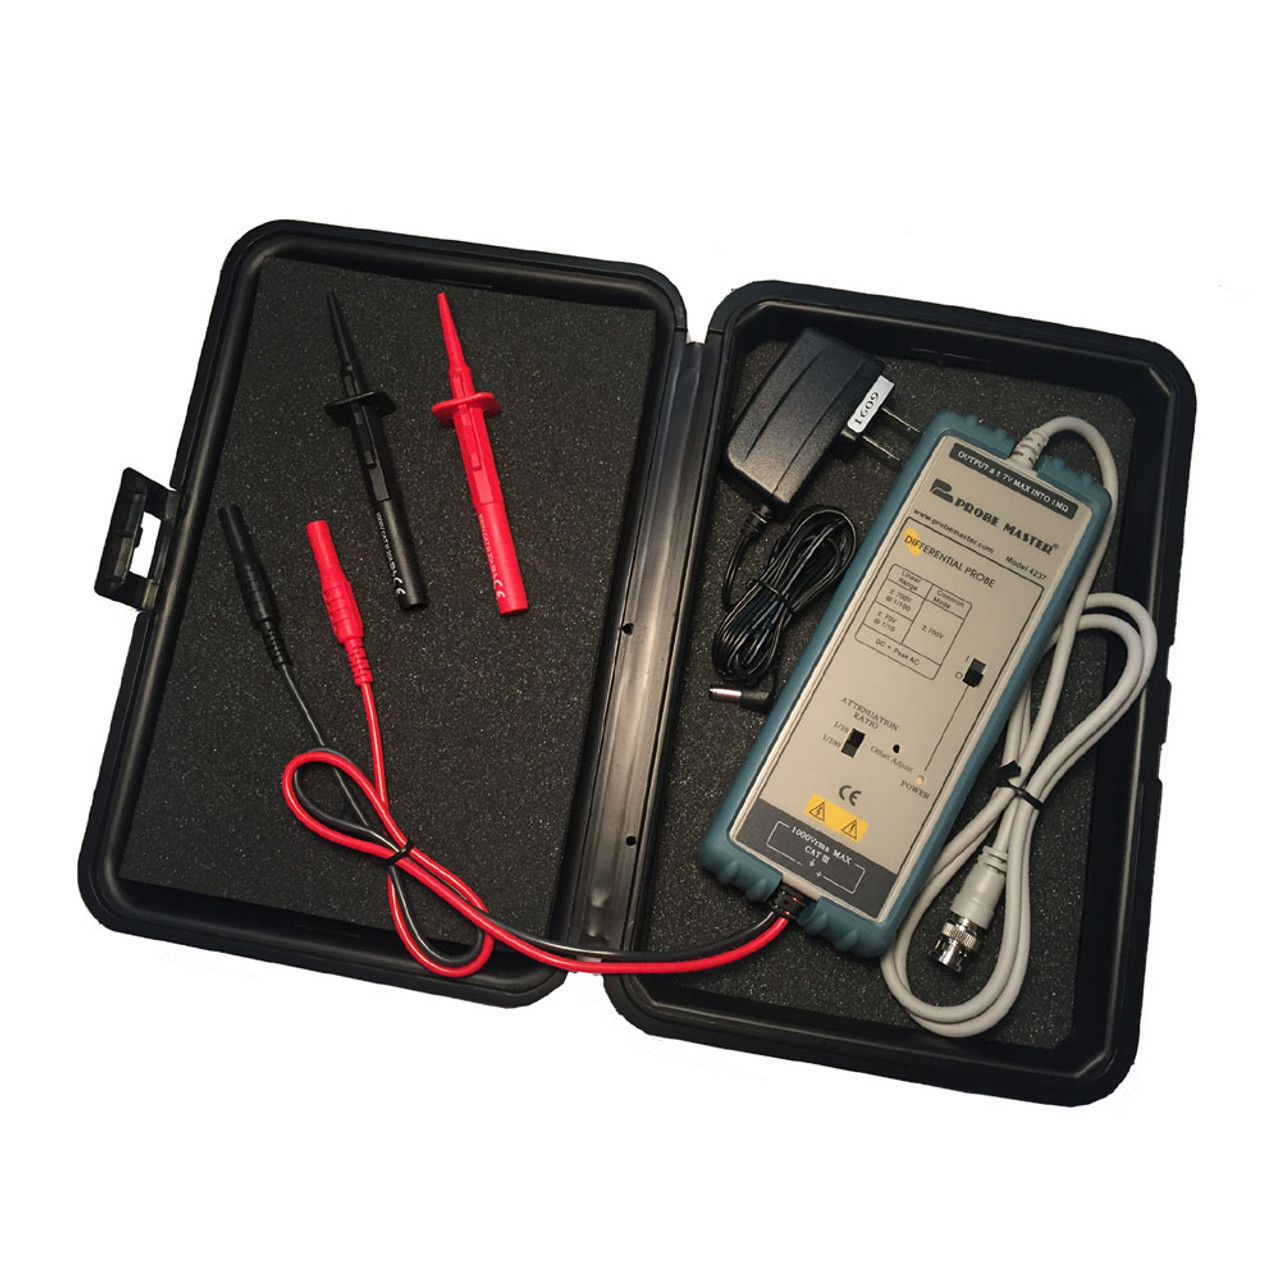 4237 Differential Probe 1:10/100, 1% Accuracy,70 MHz, 1400V,